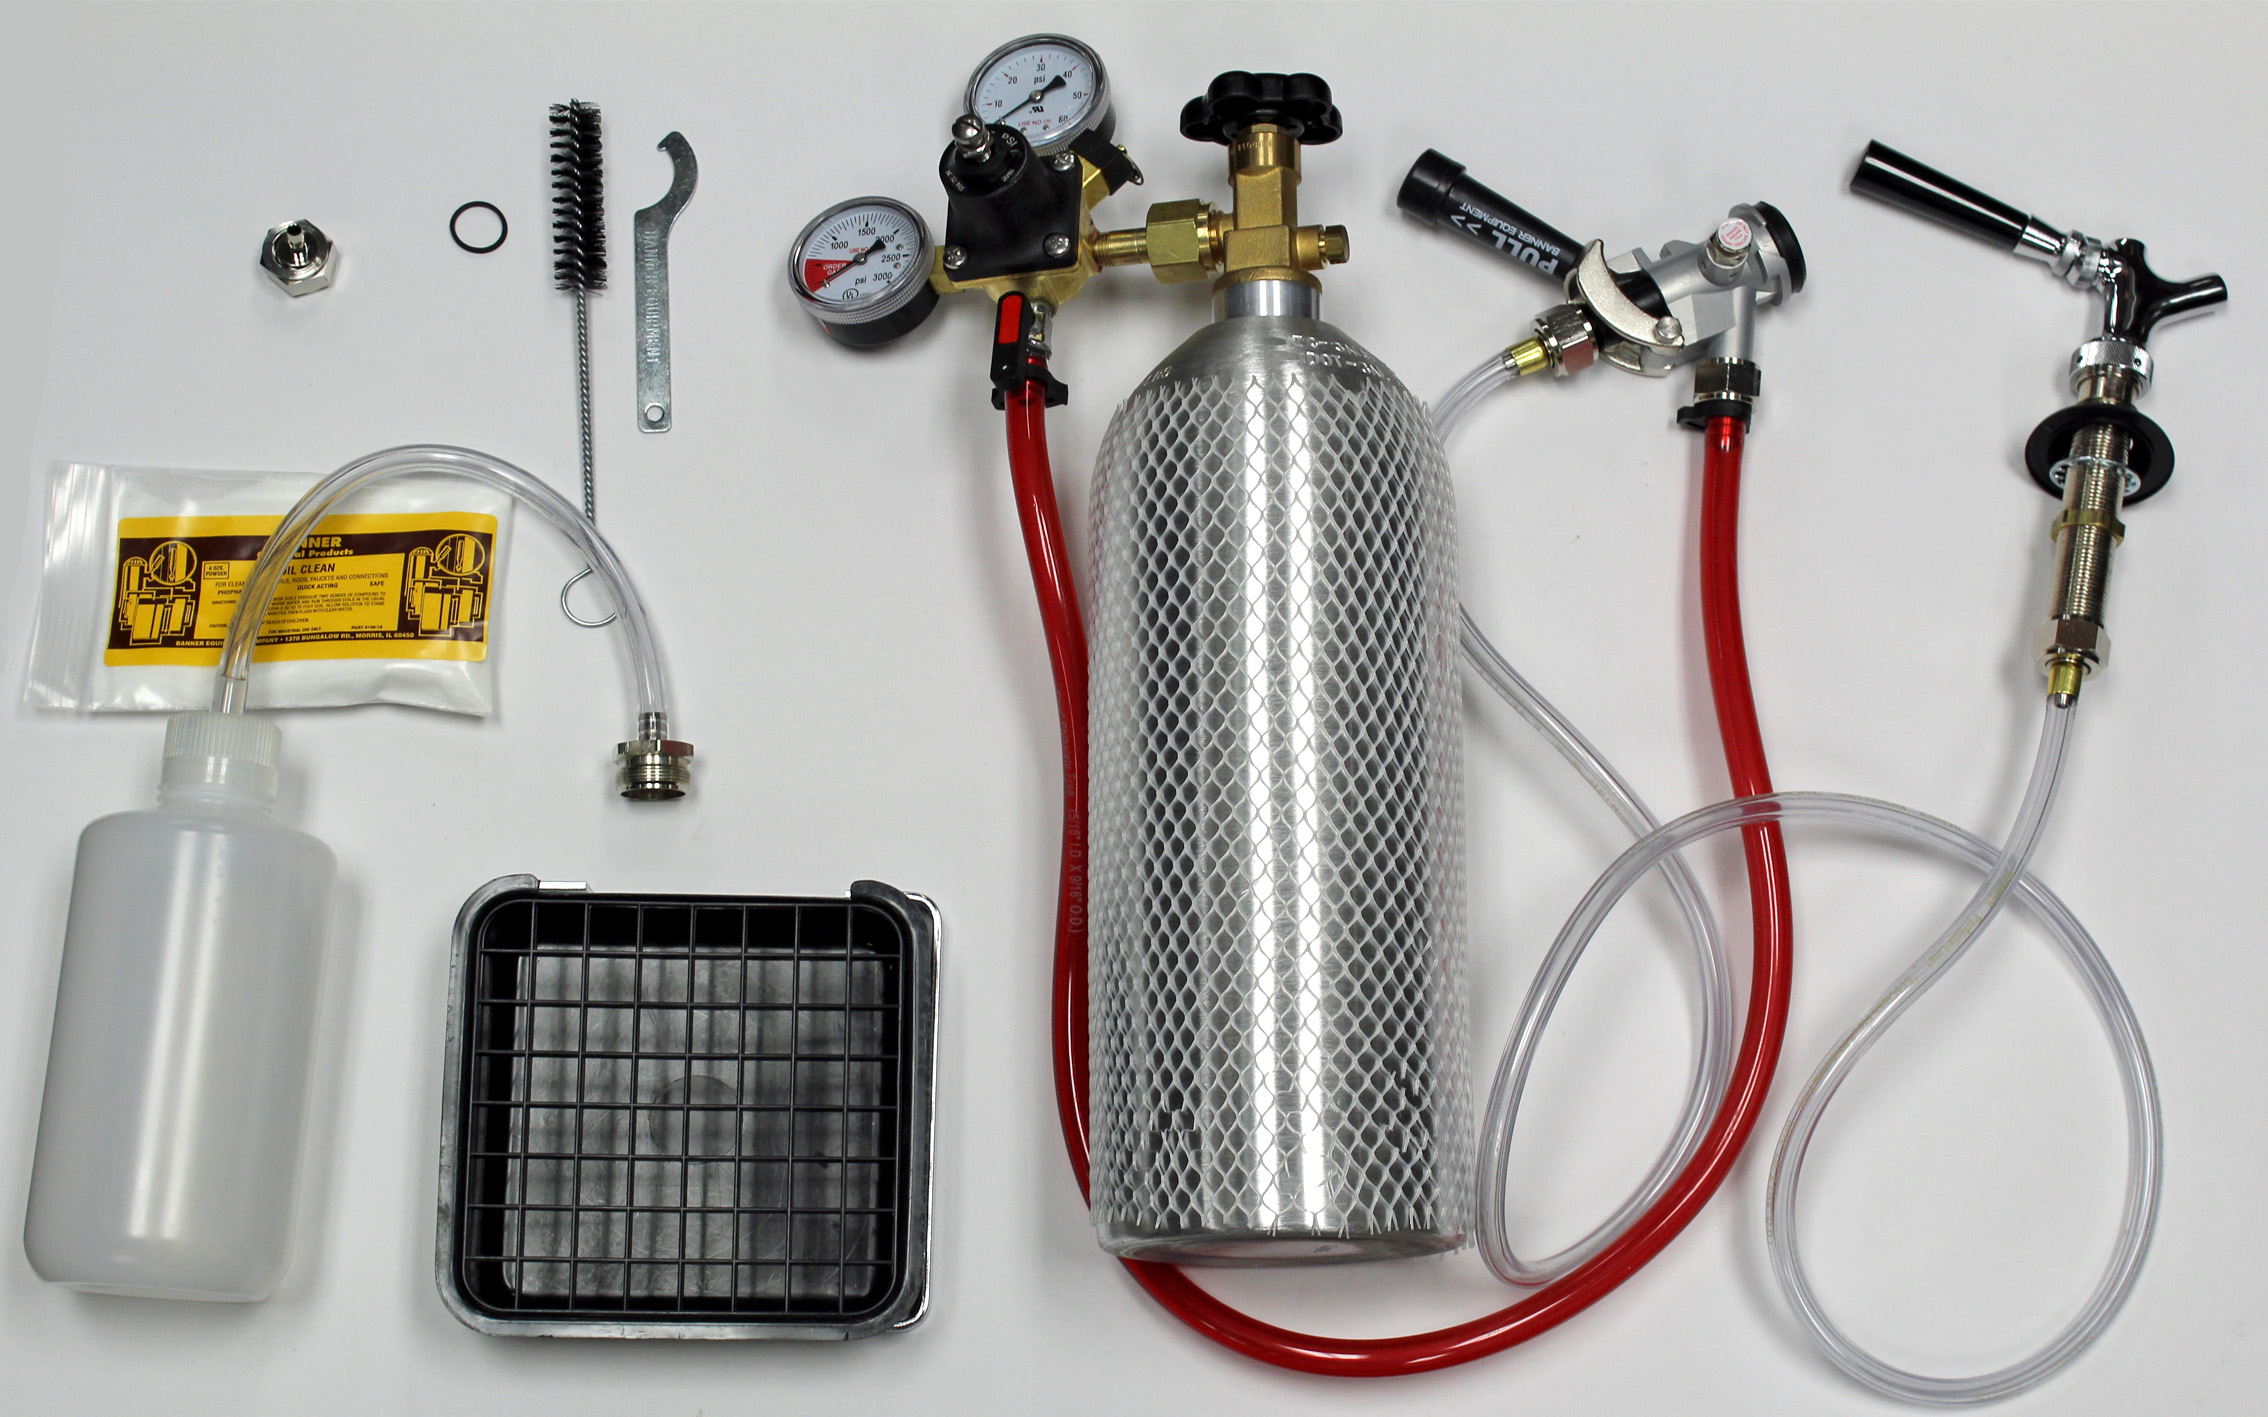 Fridge Kit W/Tray CO2 Tank title=